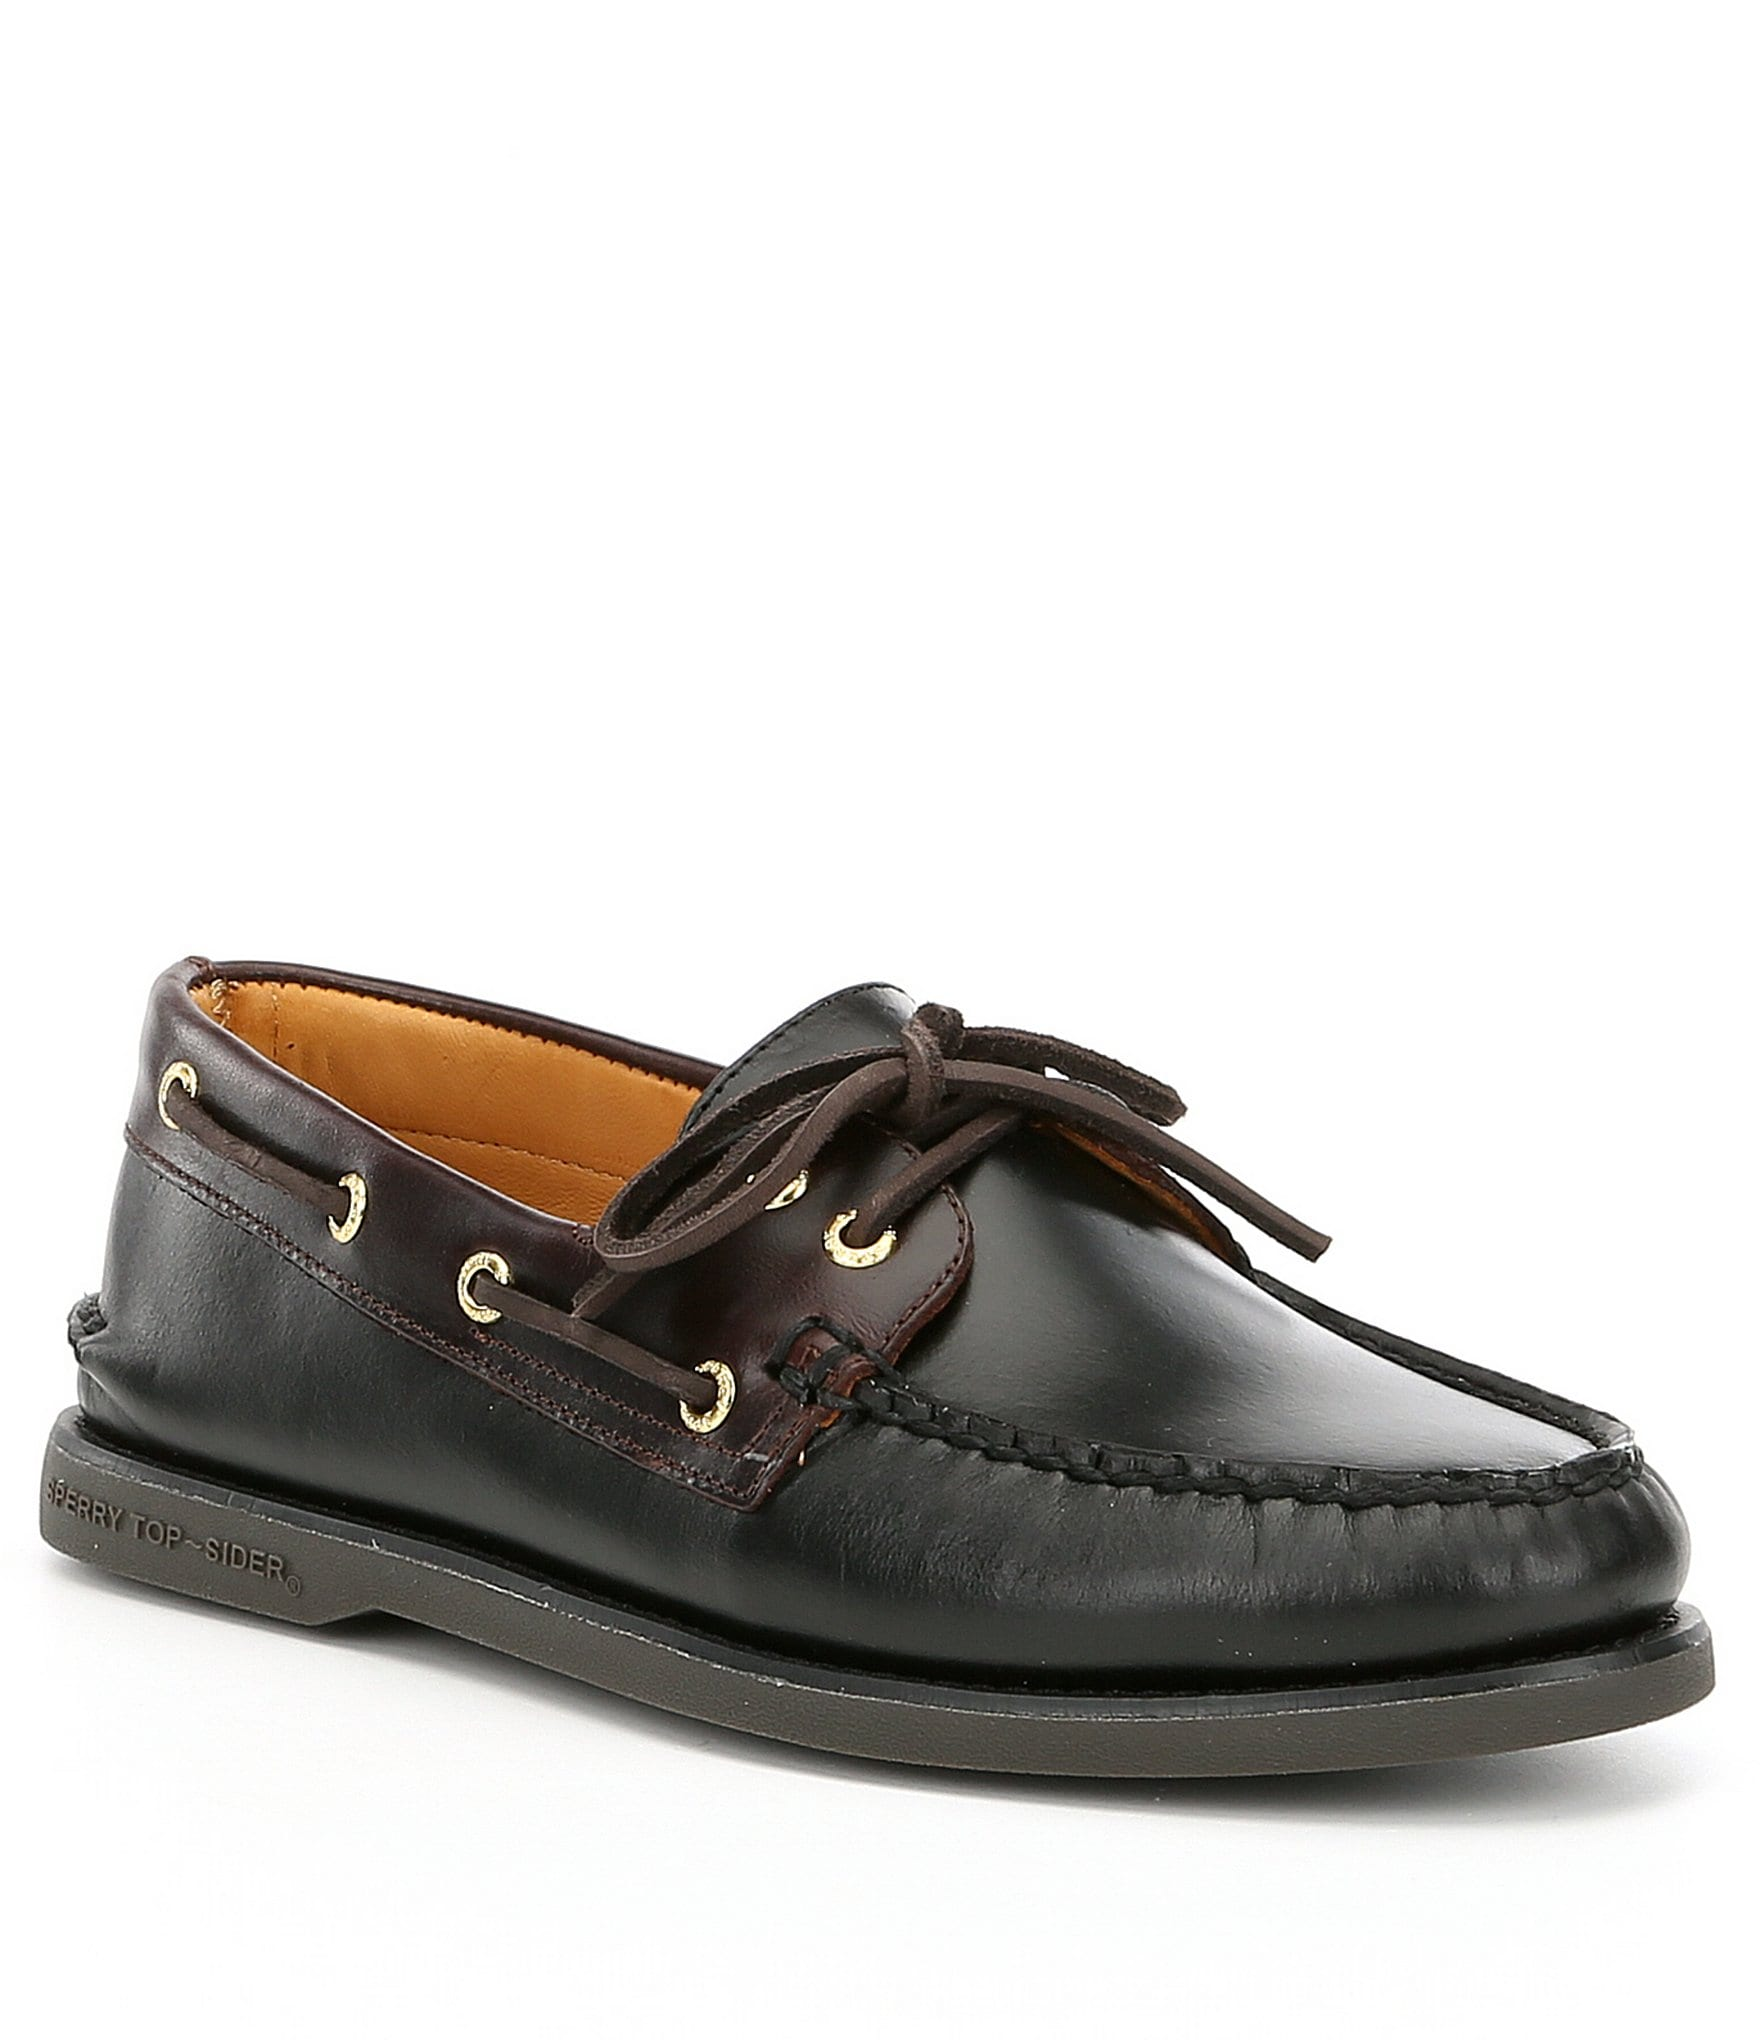 Sperry Mens Black Boat Shoes